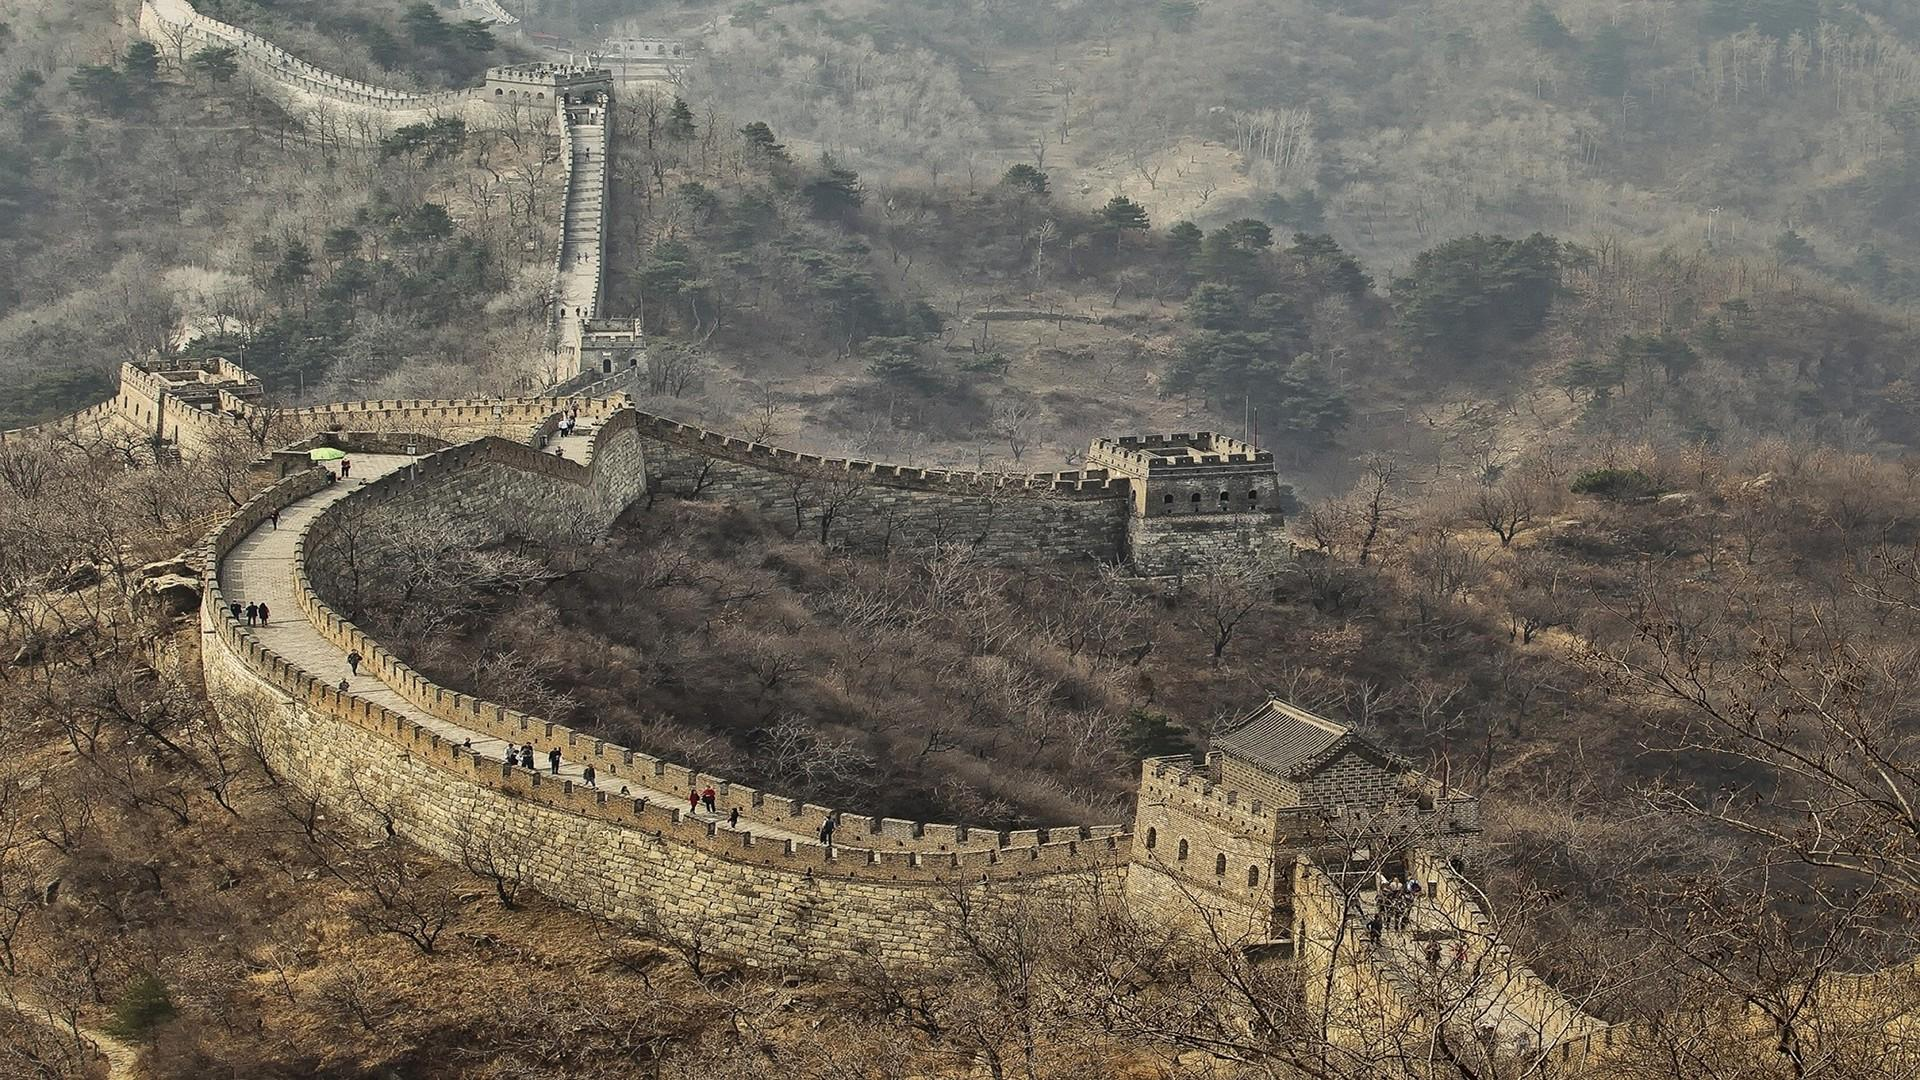 Awesome Great Wall of China Wallpapers 36537